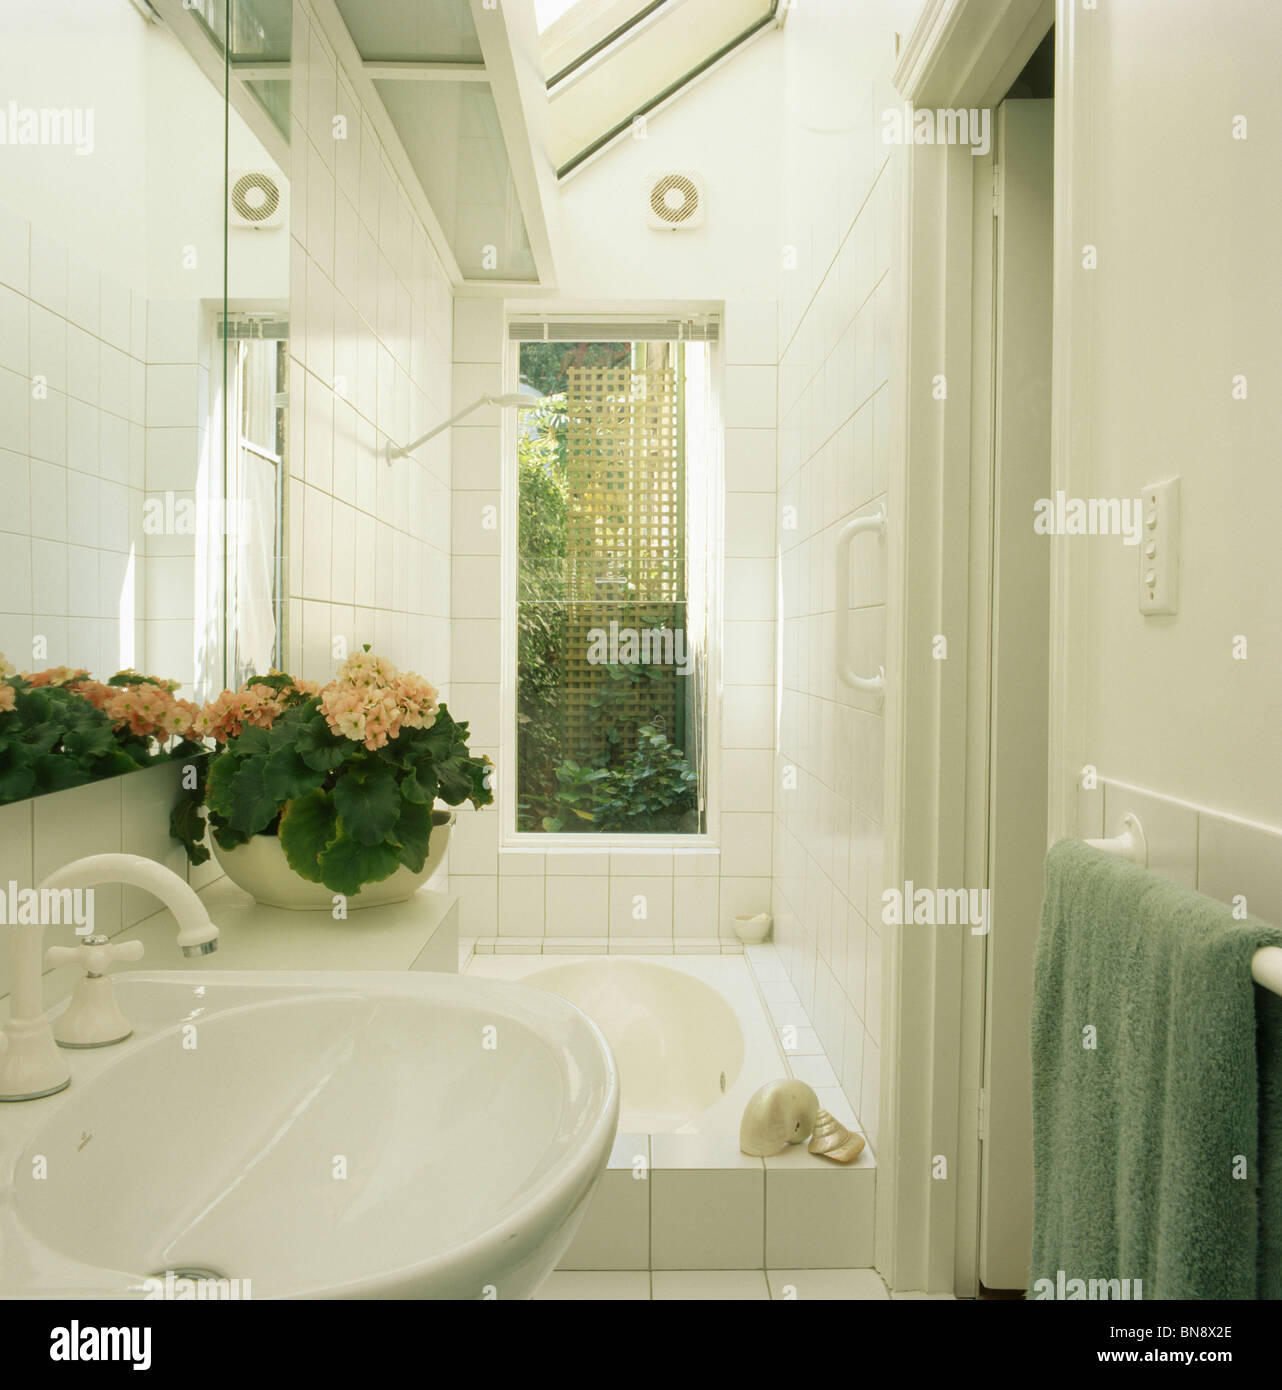 Narrow bathroom windows - Pink Flowering Houseplant On Basin In Small Modern White Tiled Bathroom With Tall Window Above